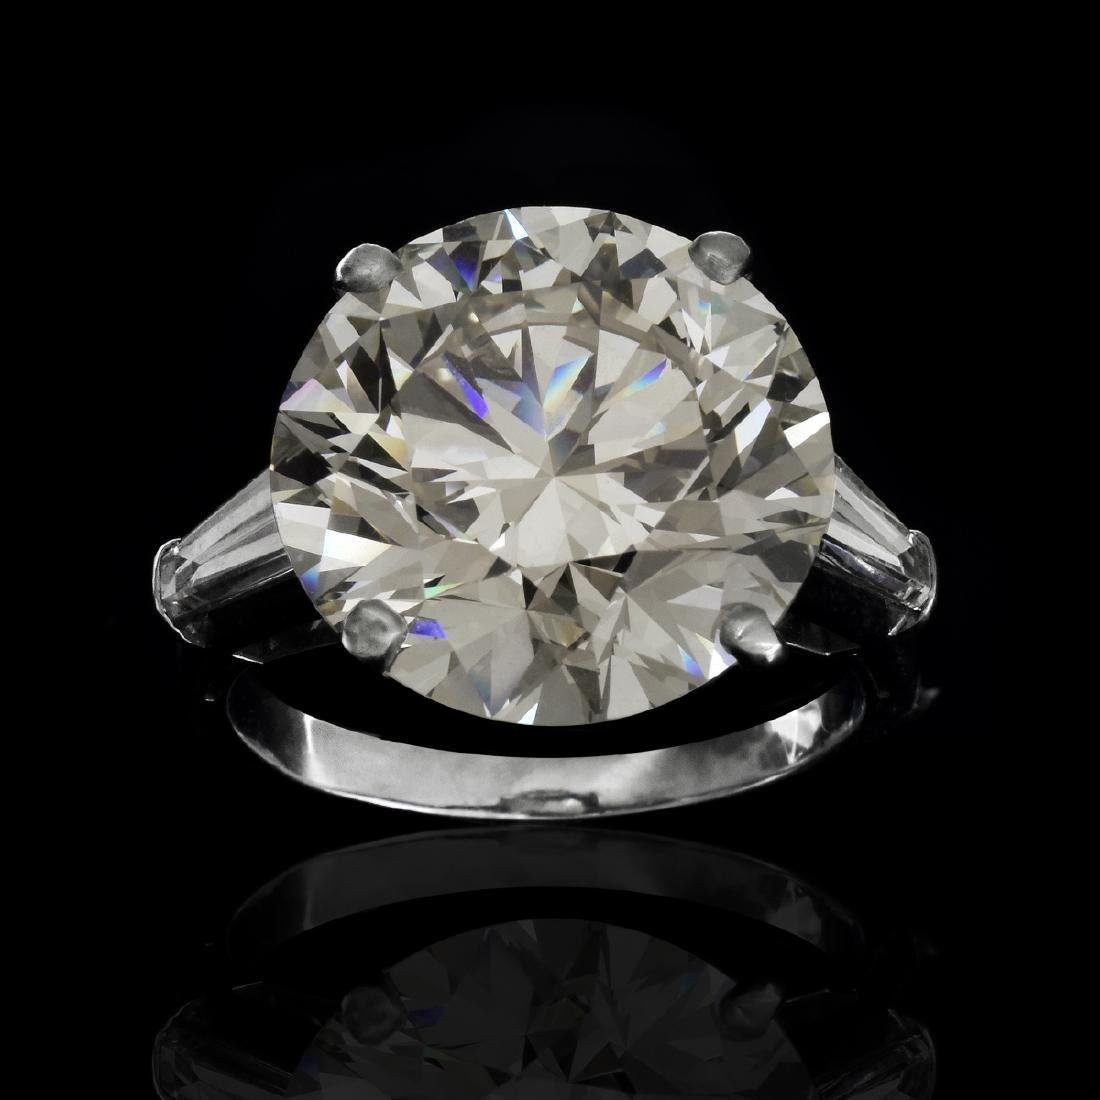 HRD Certified 16.5ct Diamond Ring